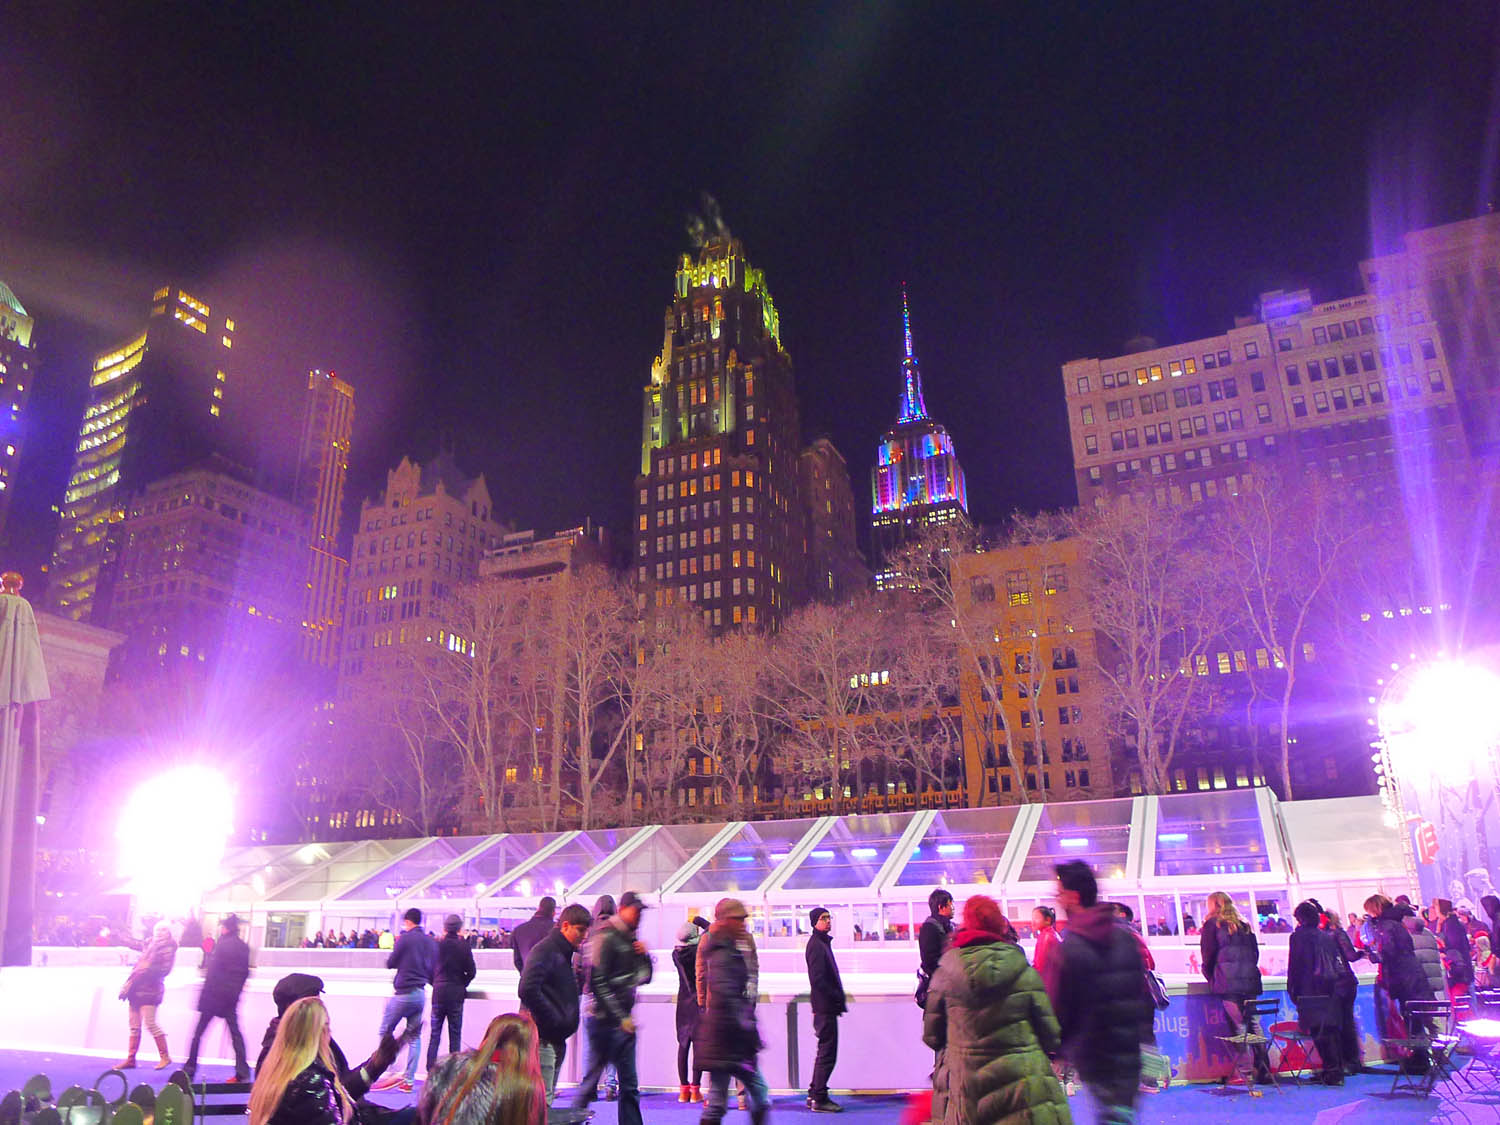 Look what else I saw from Bryant Park - the Empire State lit up for NYE